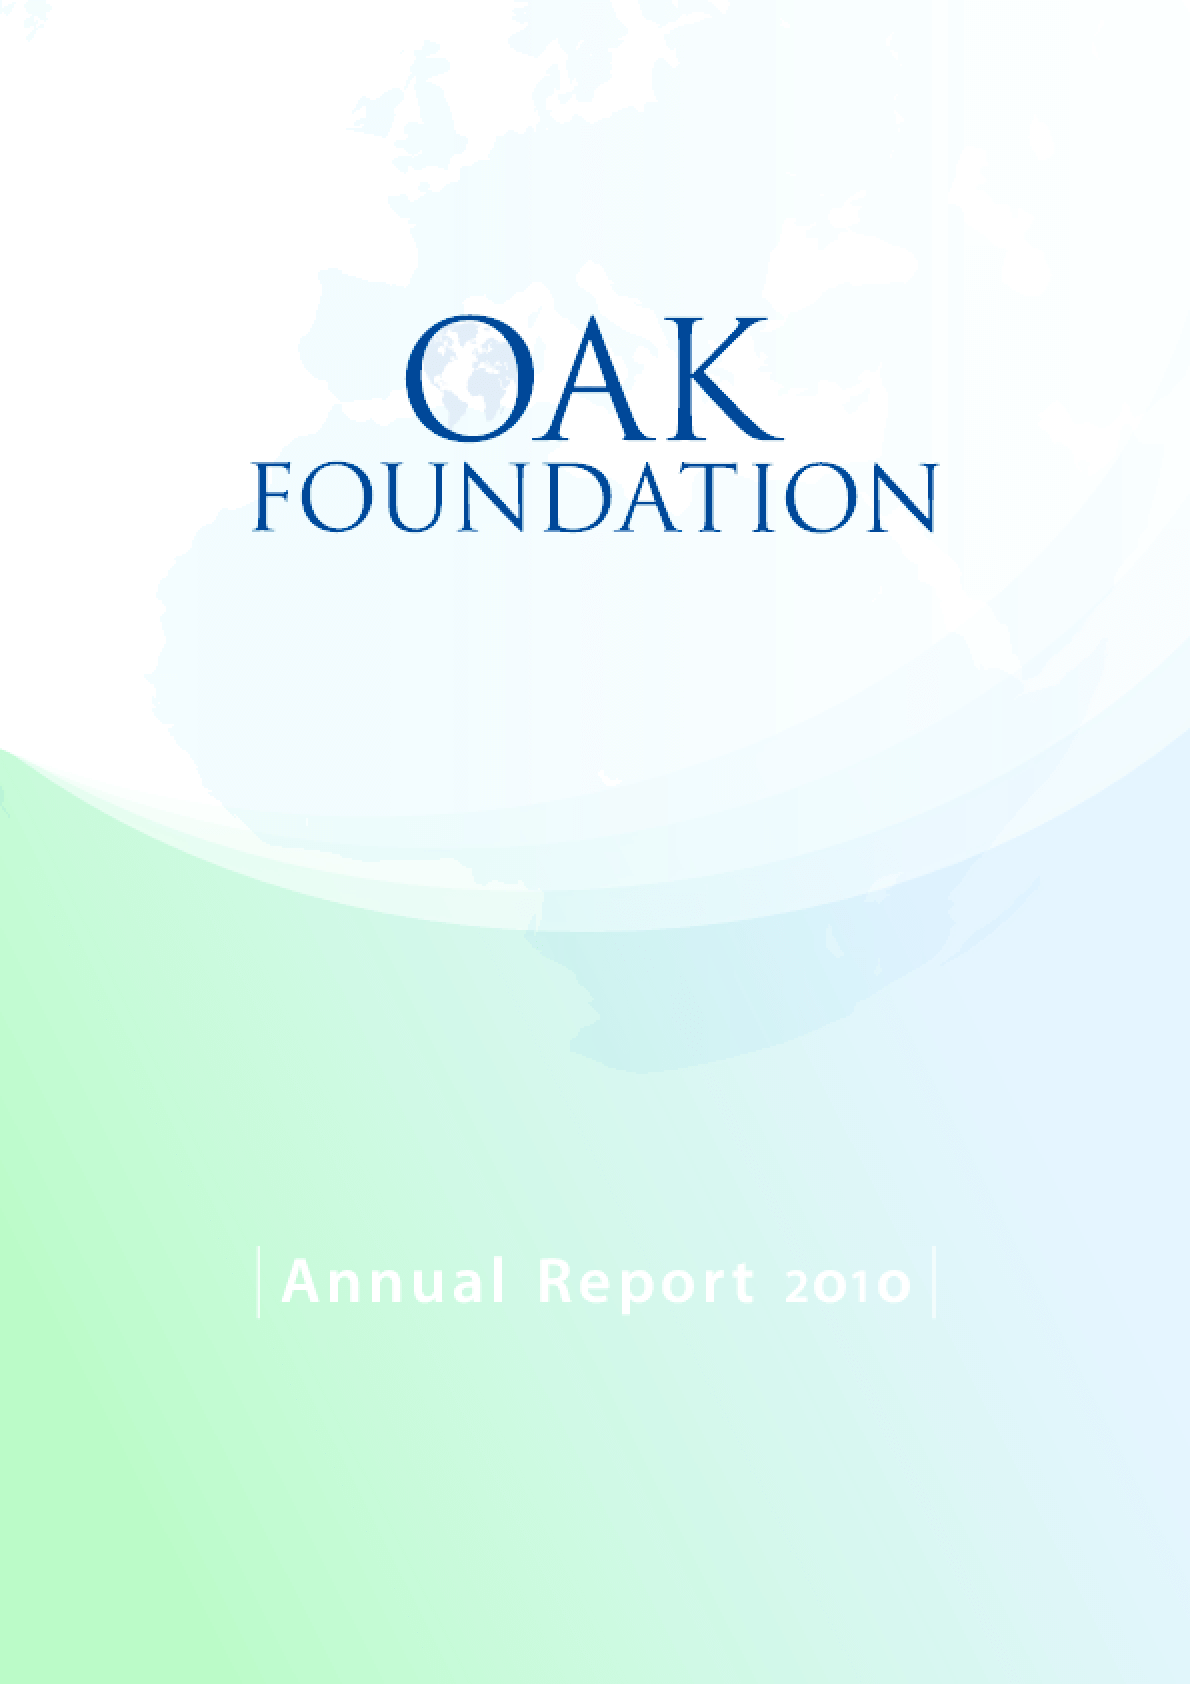 Oak Foundation Annual Report 2010